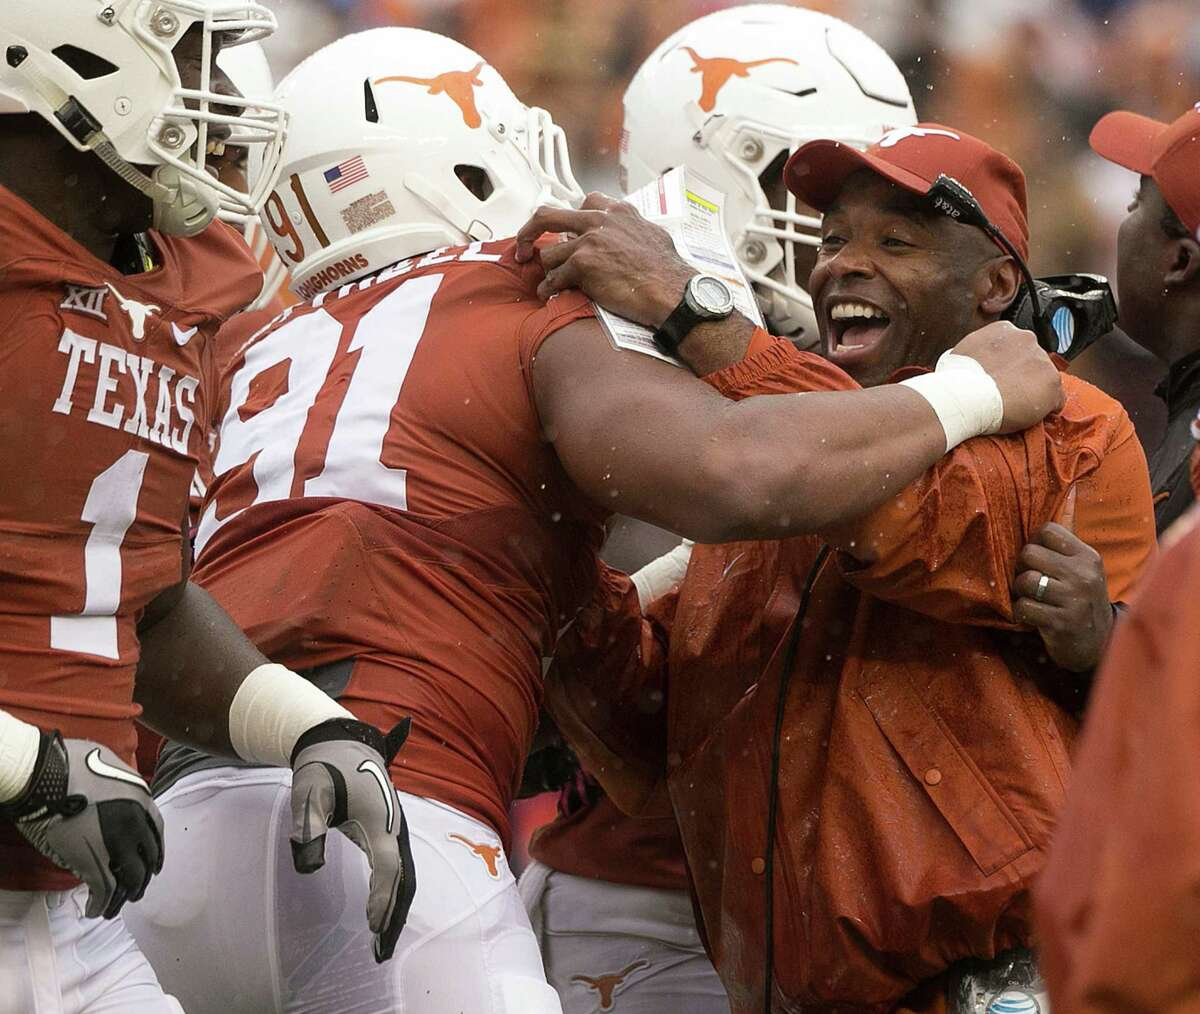 Texas head coach Charlie Strong celebrates with Bryce Cottrell (91) after a sack of Kansas State quarterback in the fourth quarter at Royal Memorial Stadium in Austin, Texas, on Saturday, Oct. 24, 2015. Texas won, 23-9. (Deborah Cannon/American-Statesman/TNS)